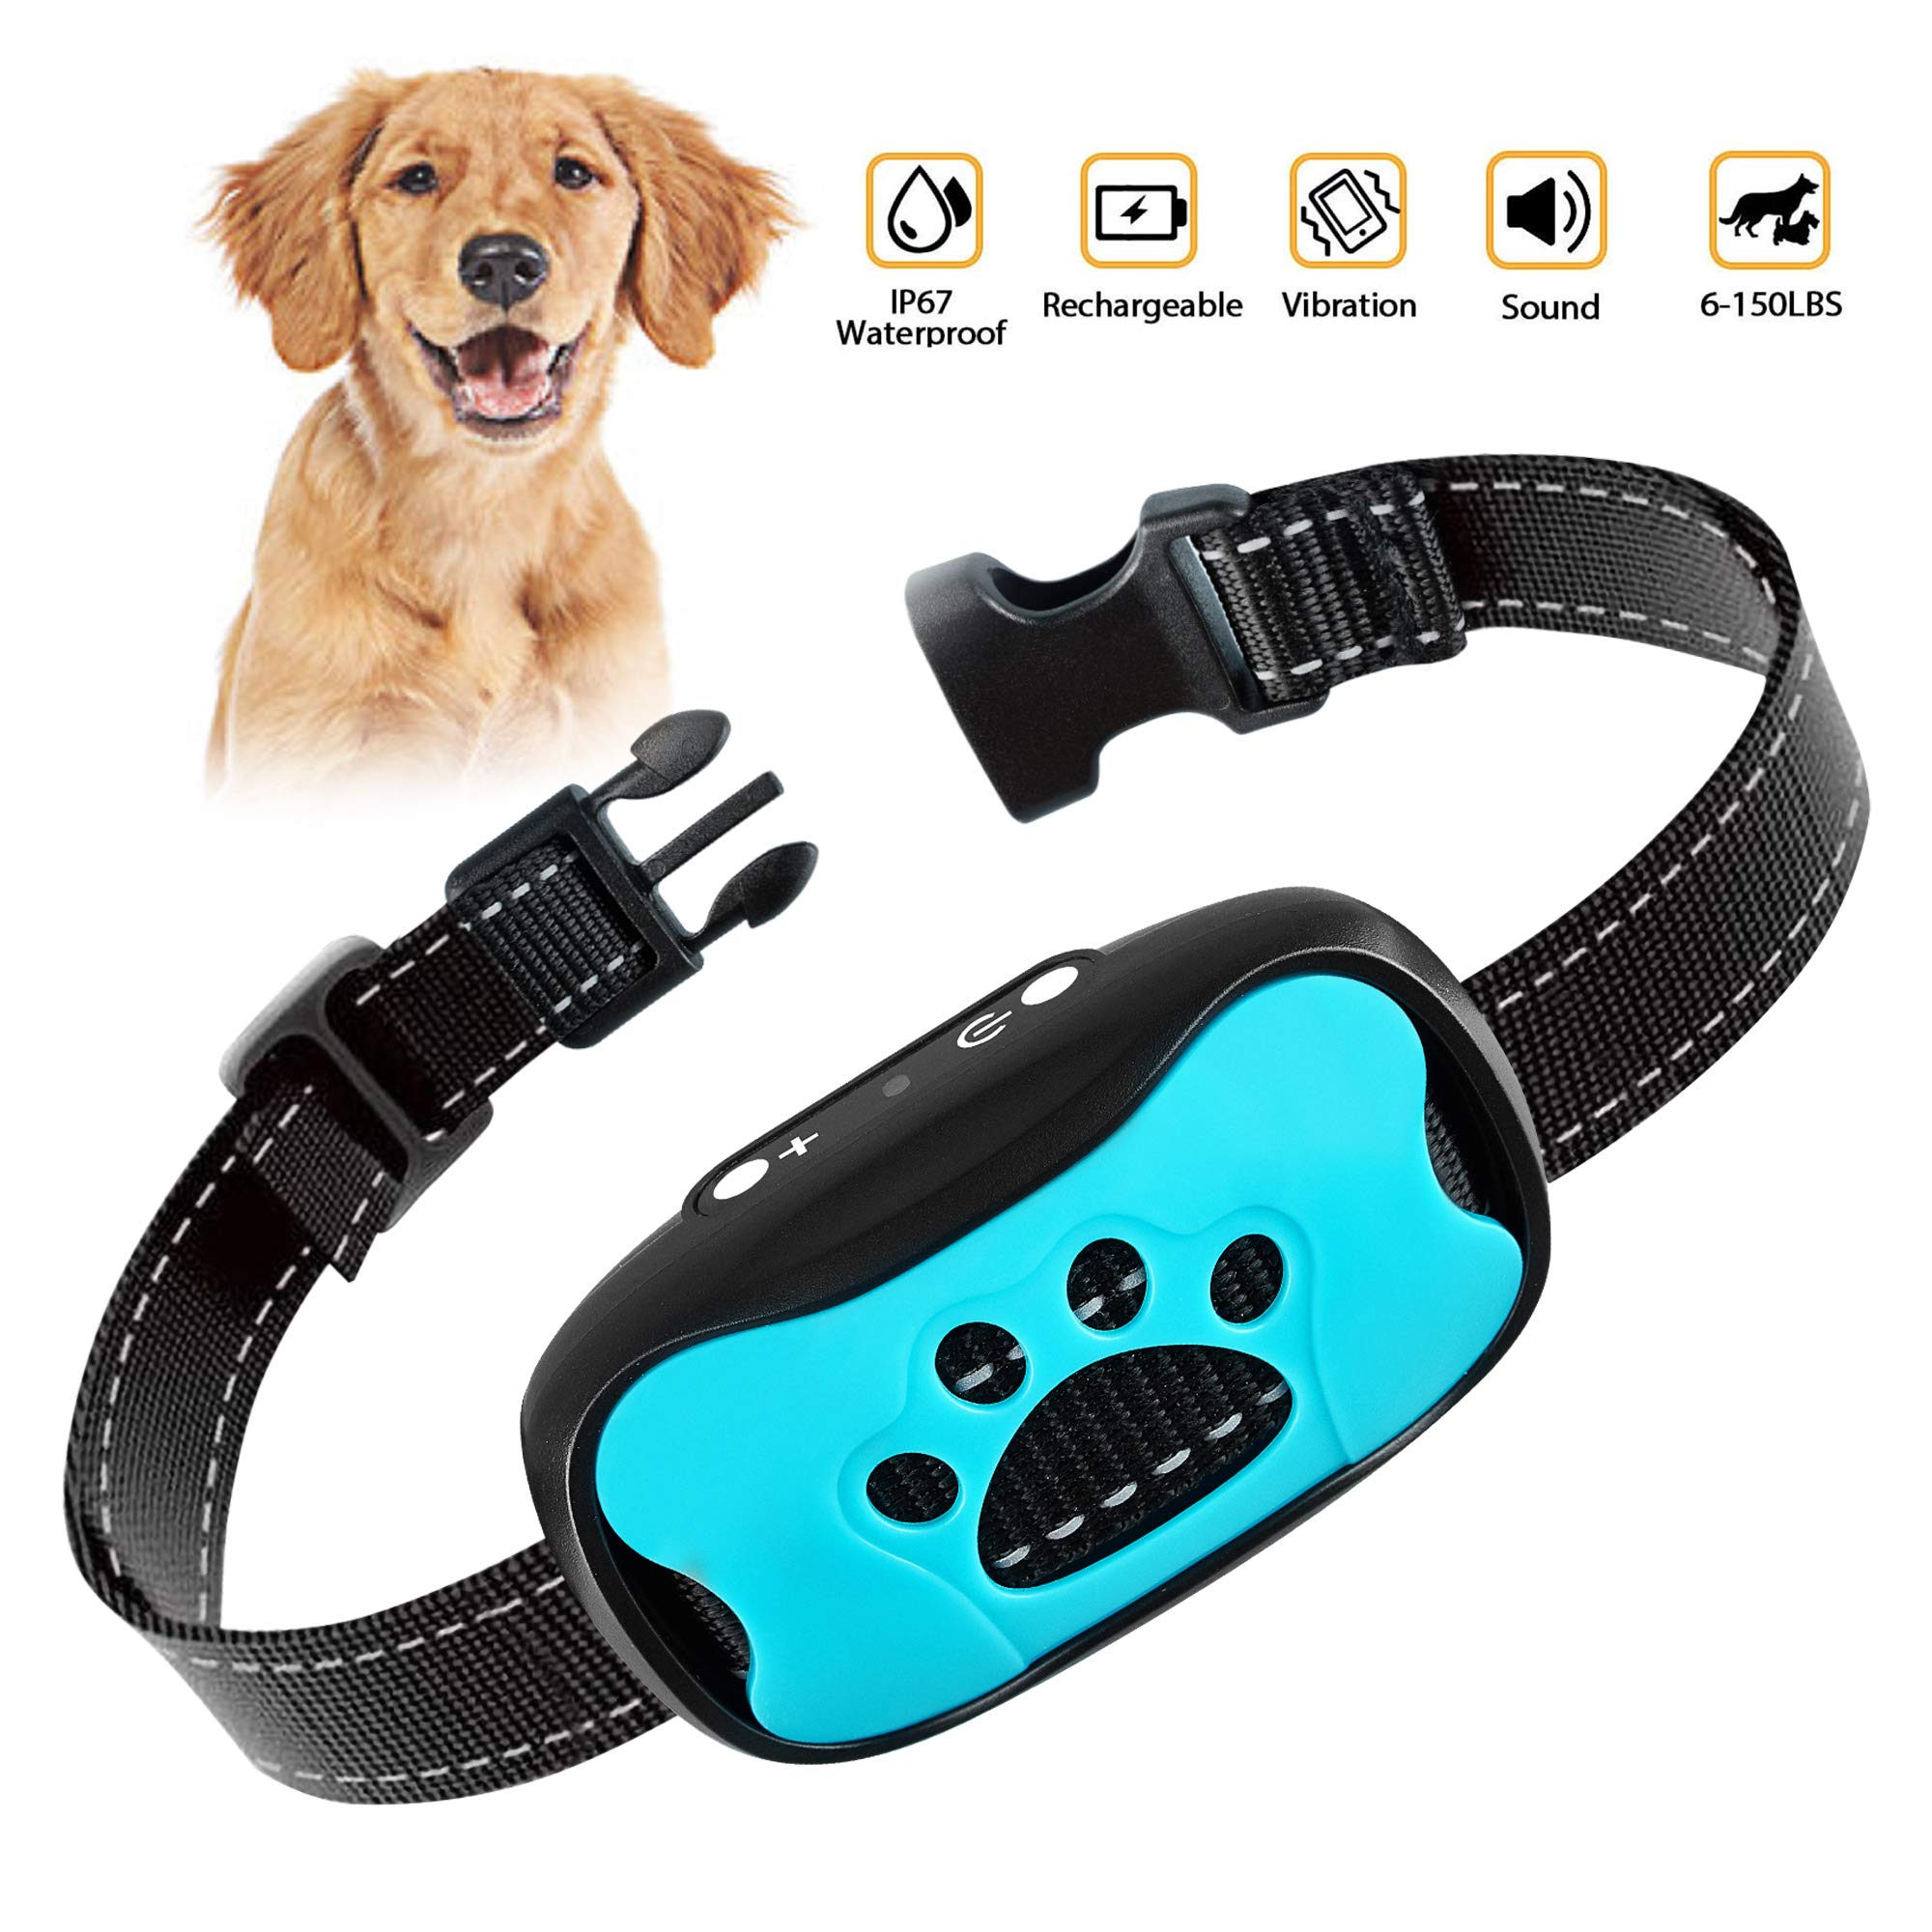 Dog Bark Collar- Automatic Anti Barking Training Collar with Beep and Vibration, No Painful Shock for Small Medium Large Dogs by FANZO